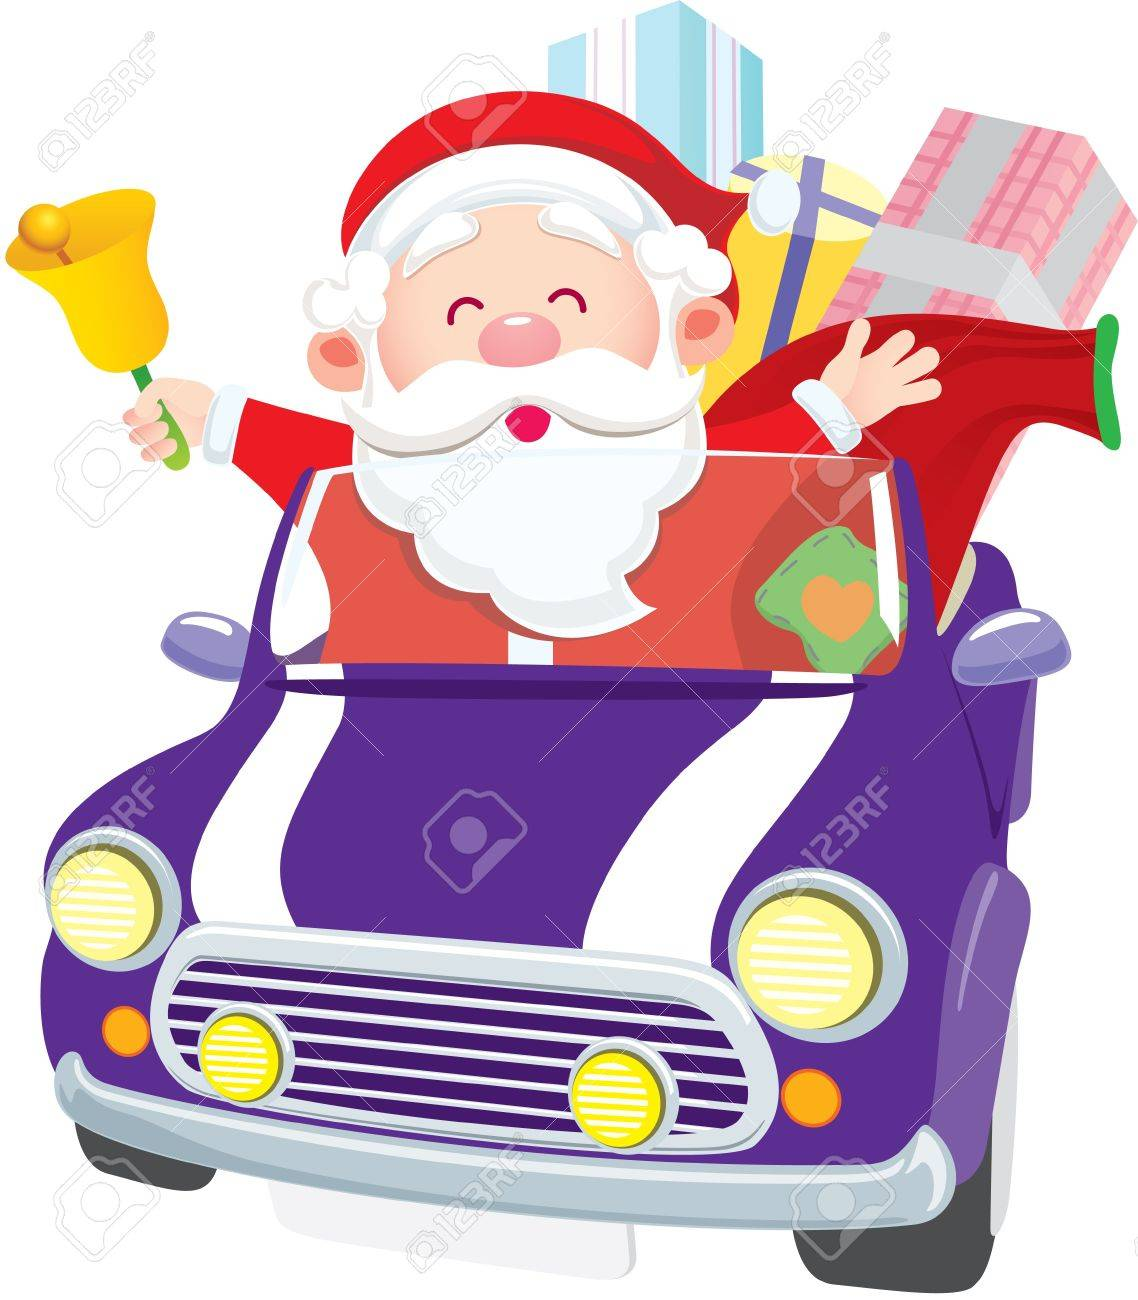 Santa Claus driving car with gift and ring the bell Stock Vector - 15520328